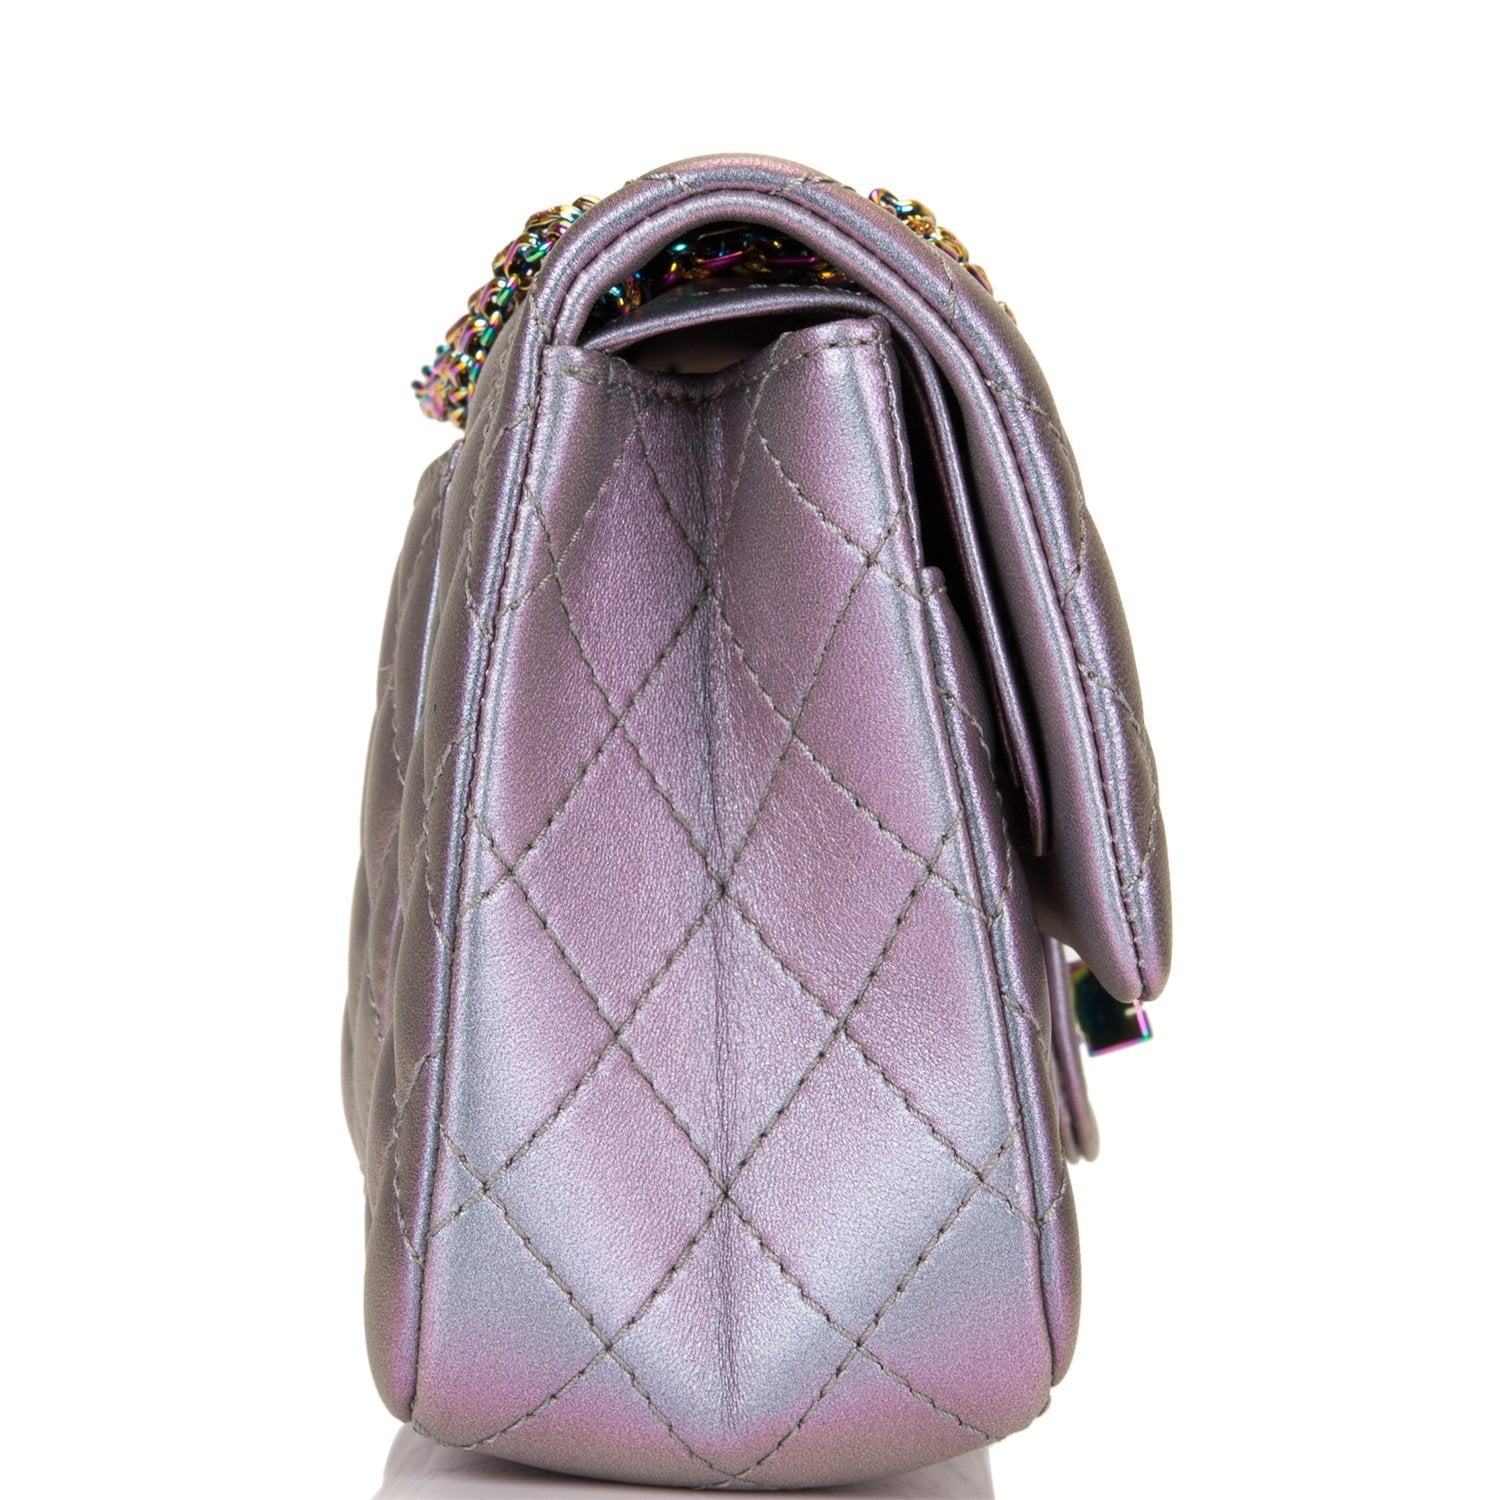 8a4db677d64f ... Chanel Light Purple Mermaid Iridescent Goatskin Medium 2.55 Reissue  Double Flap Bag ...